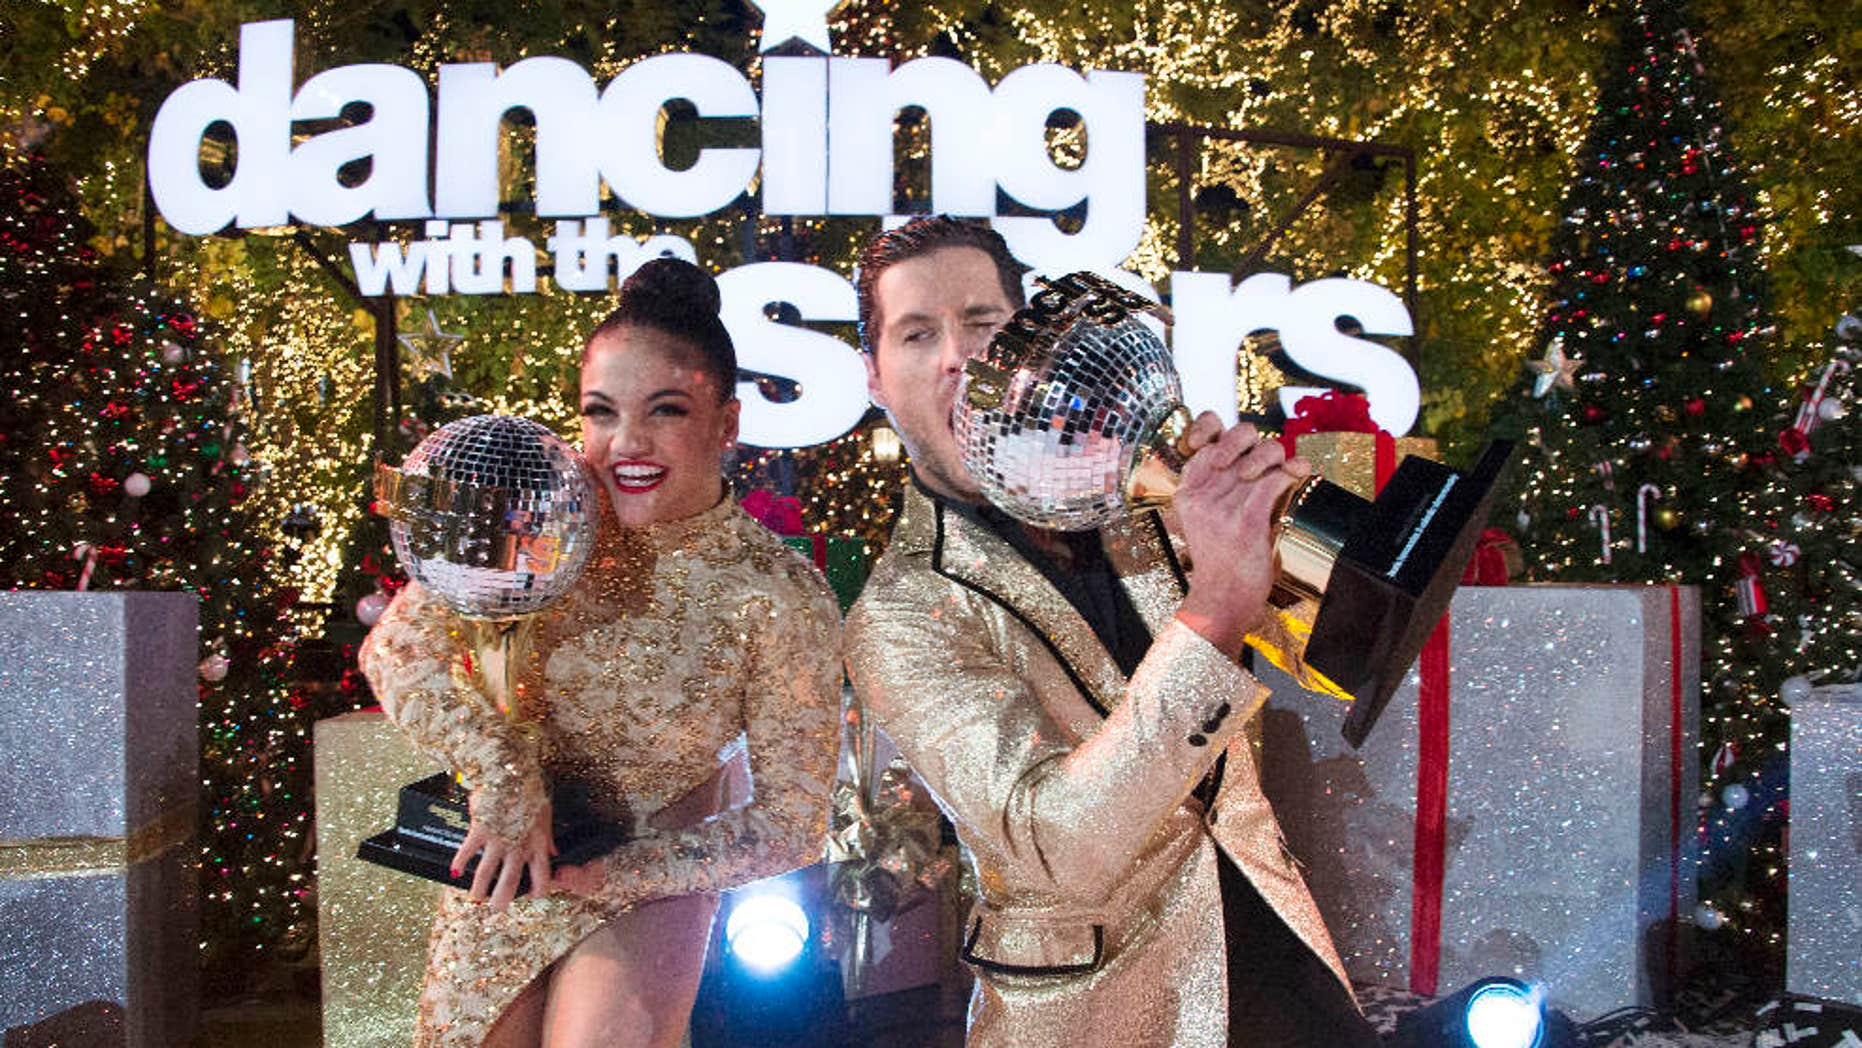 """In this Nov. 22, 2016 photo released by ABC, Laurie Hernandez, left, and Val Chmerkovskiy celebrate after winning the 23rd season of the celebrity dance competition series, """"Dancing With The Stars,"""" in Los Angeles."""